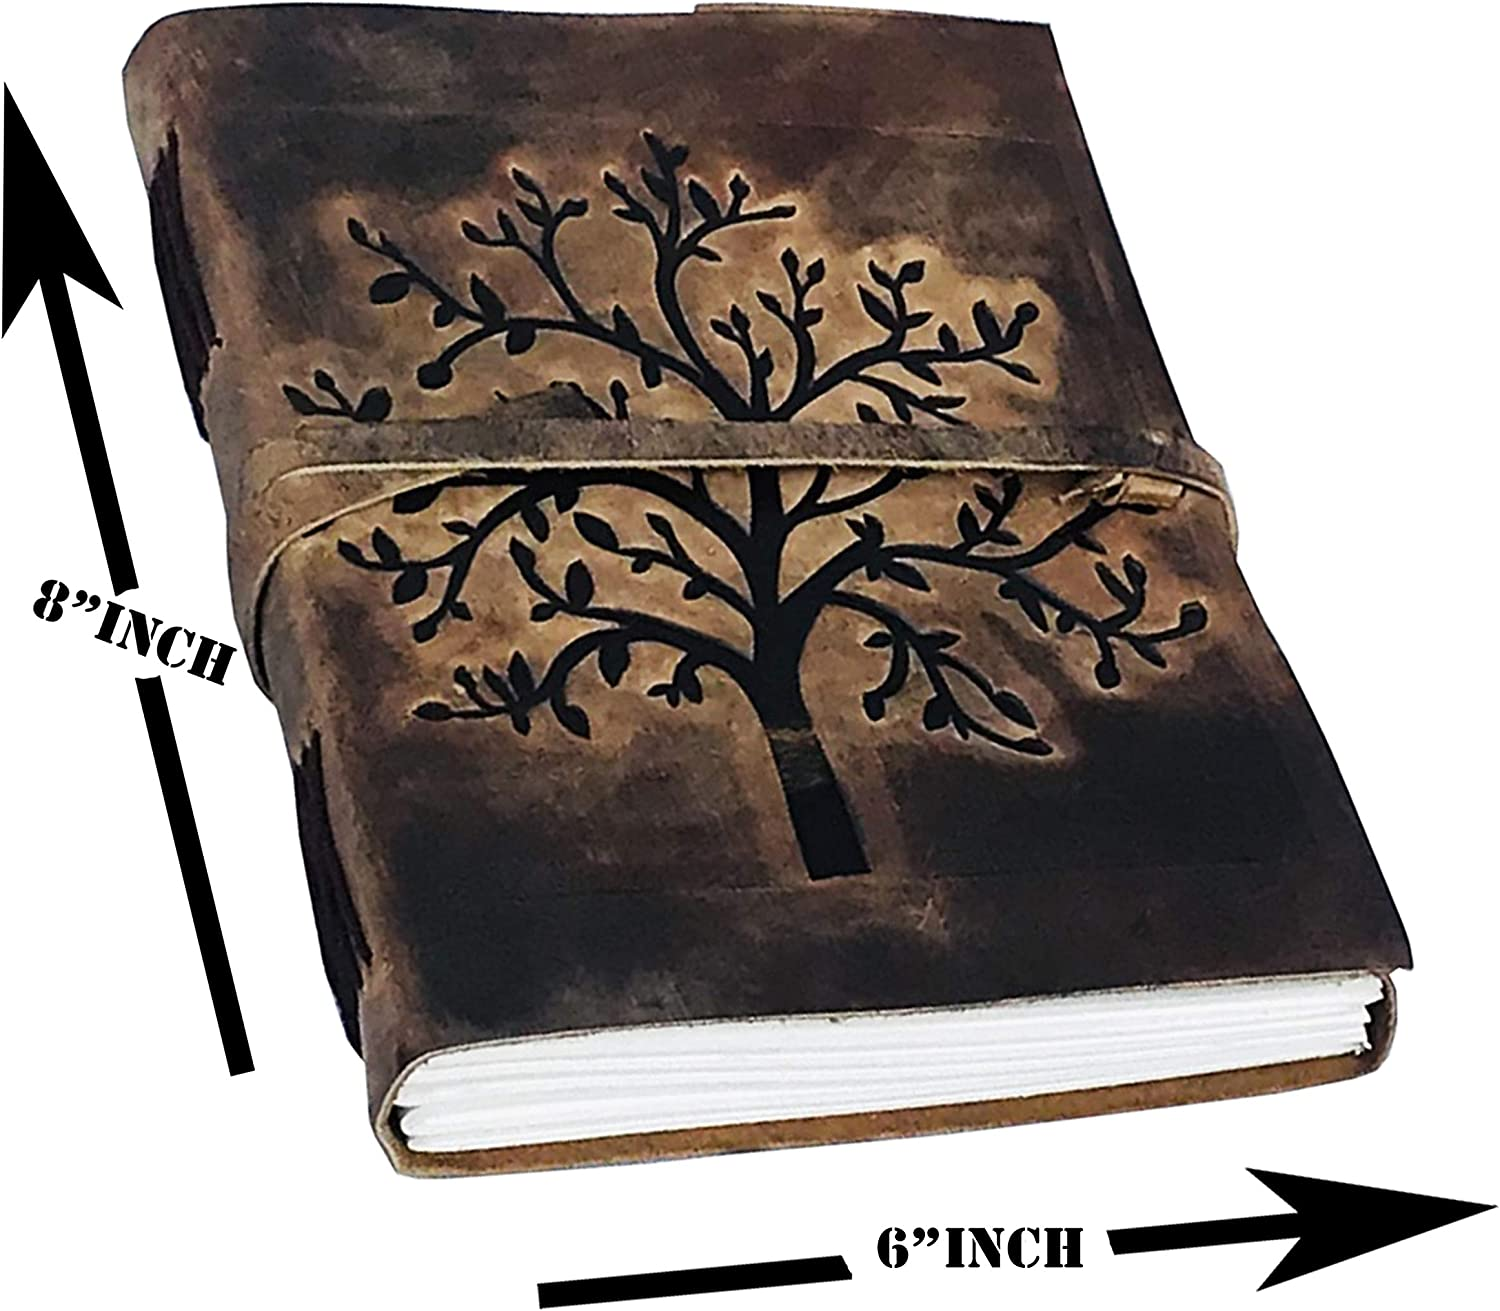 Leather Bound Journal Notebook for Men /& Women Travel Big Life journals for Writing Sketching Drawing Poetry a5 Unlined Blank Diary Book Sketch Plain Blank Handmade Paper refillable Tree of Life